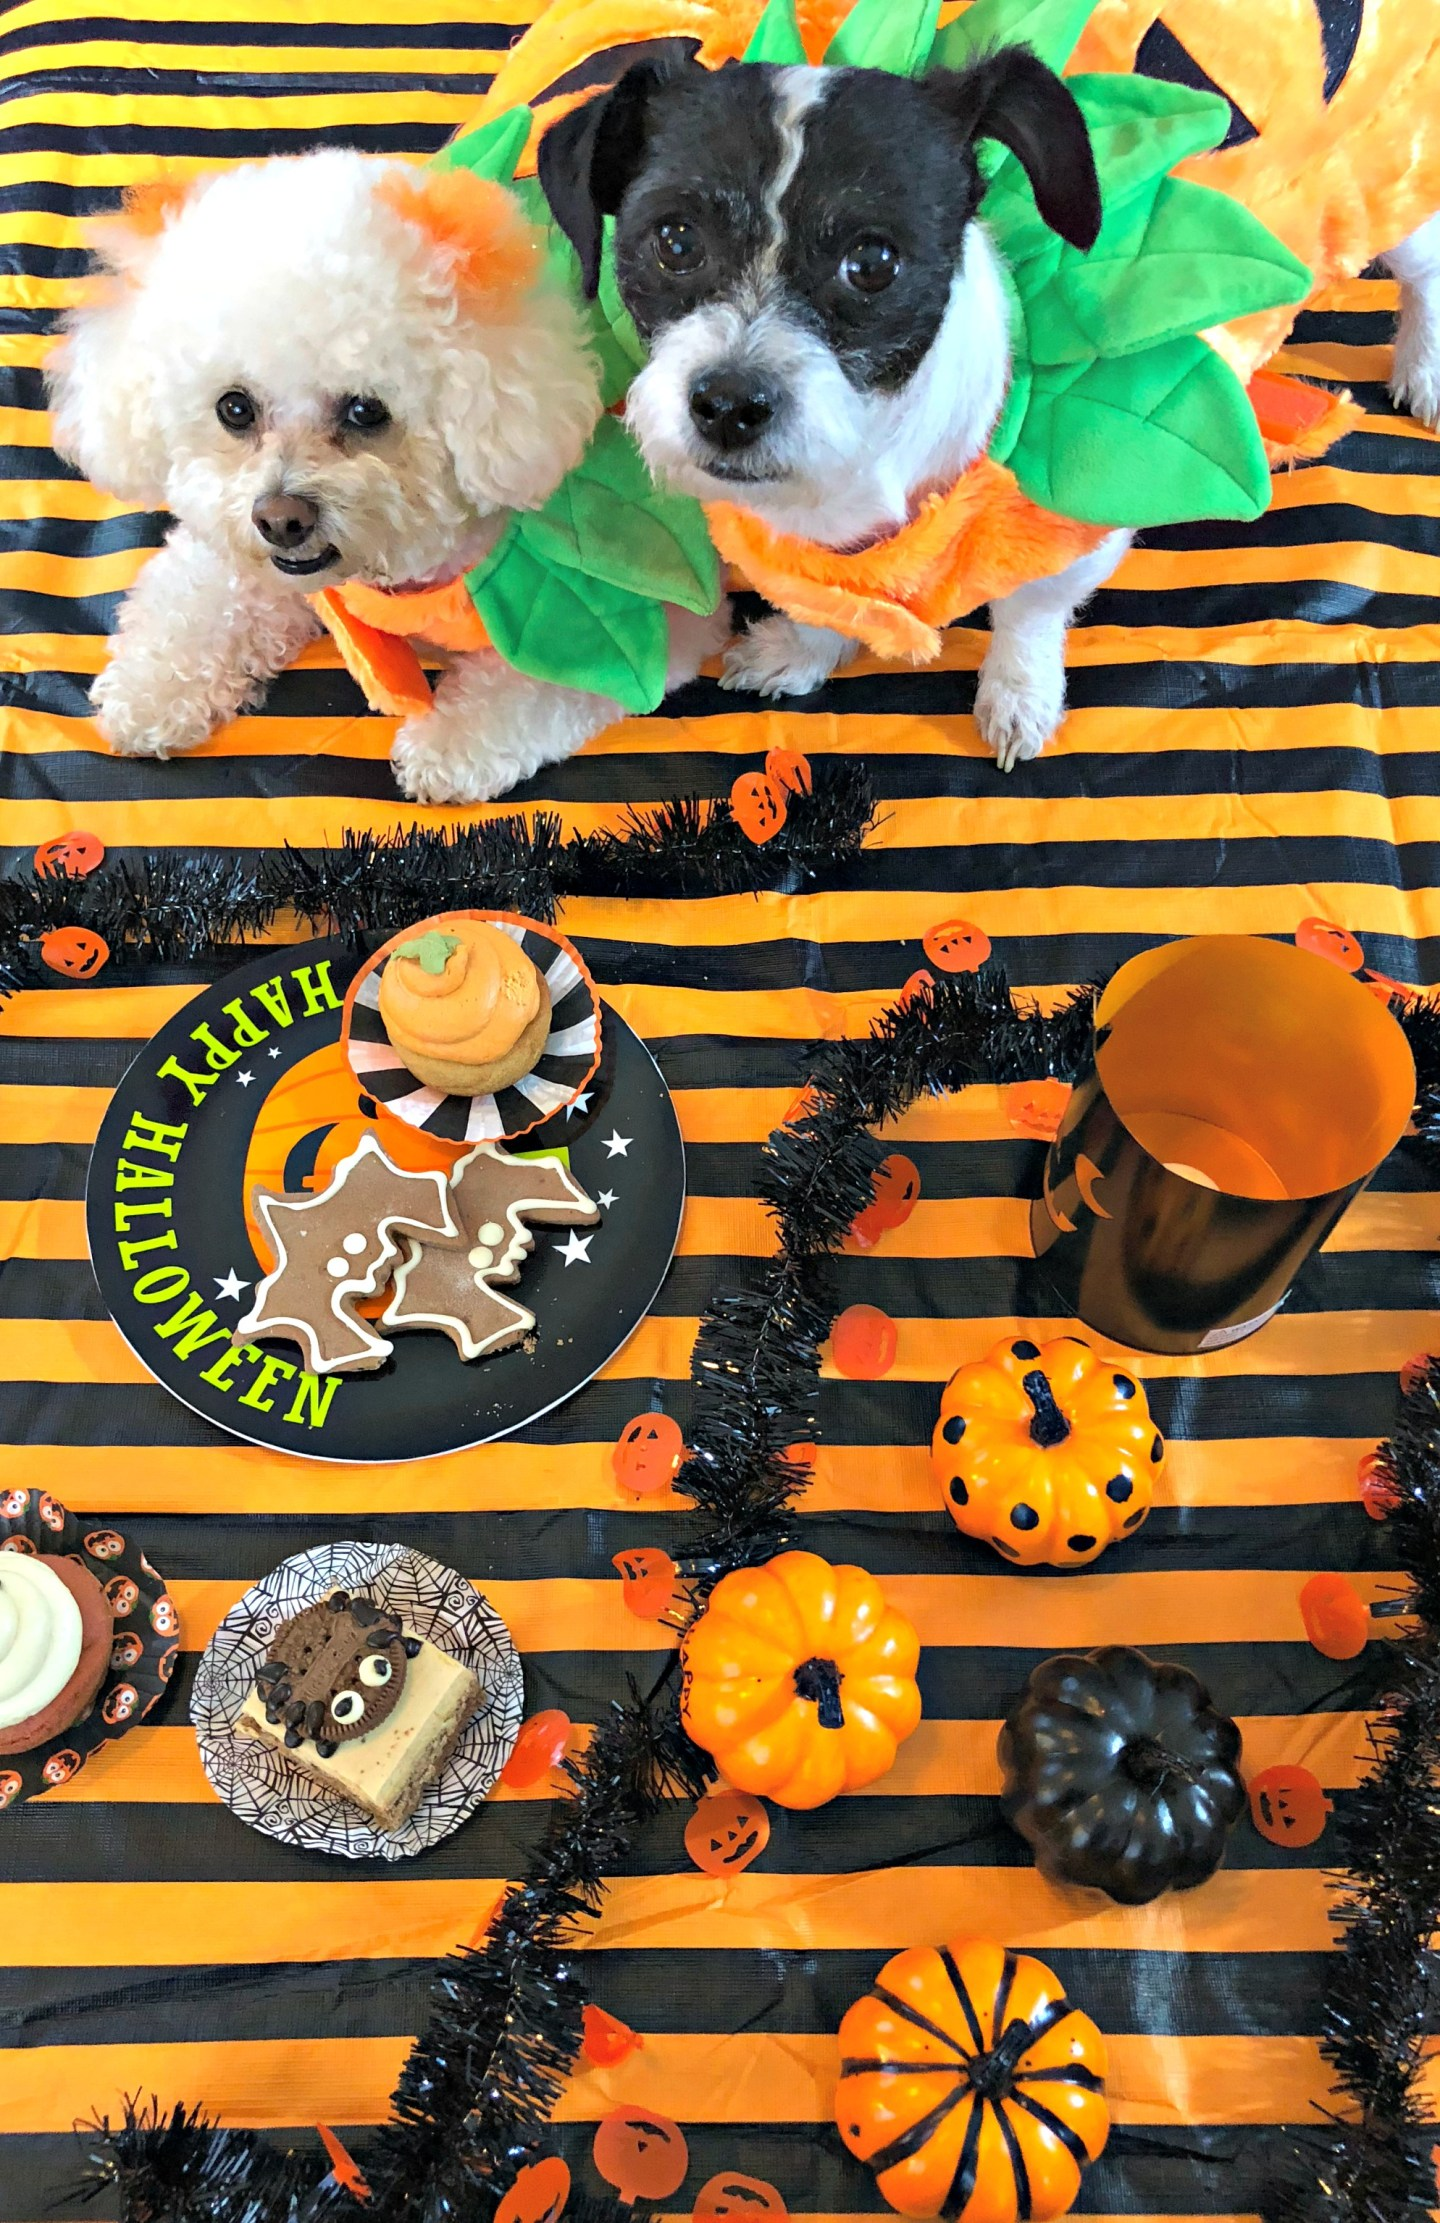 Tips For A Mess Free Dog Party // Beauty With Lily #ad #ProtectFromPetMess #SeasonalSolutions